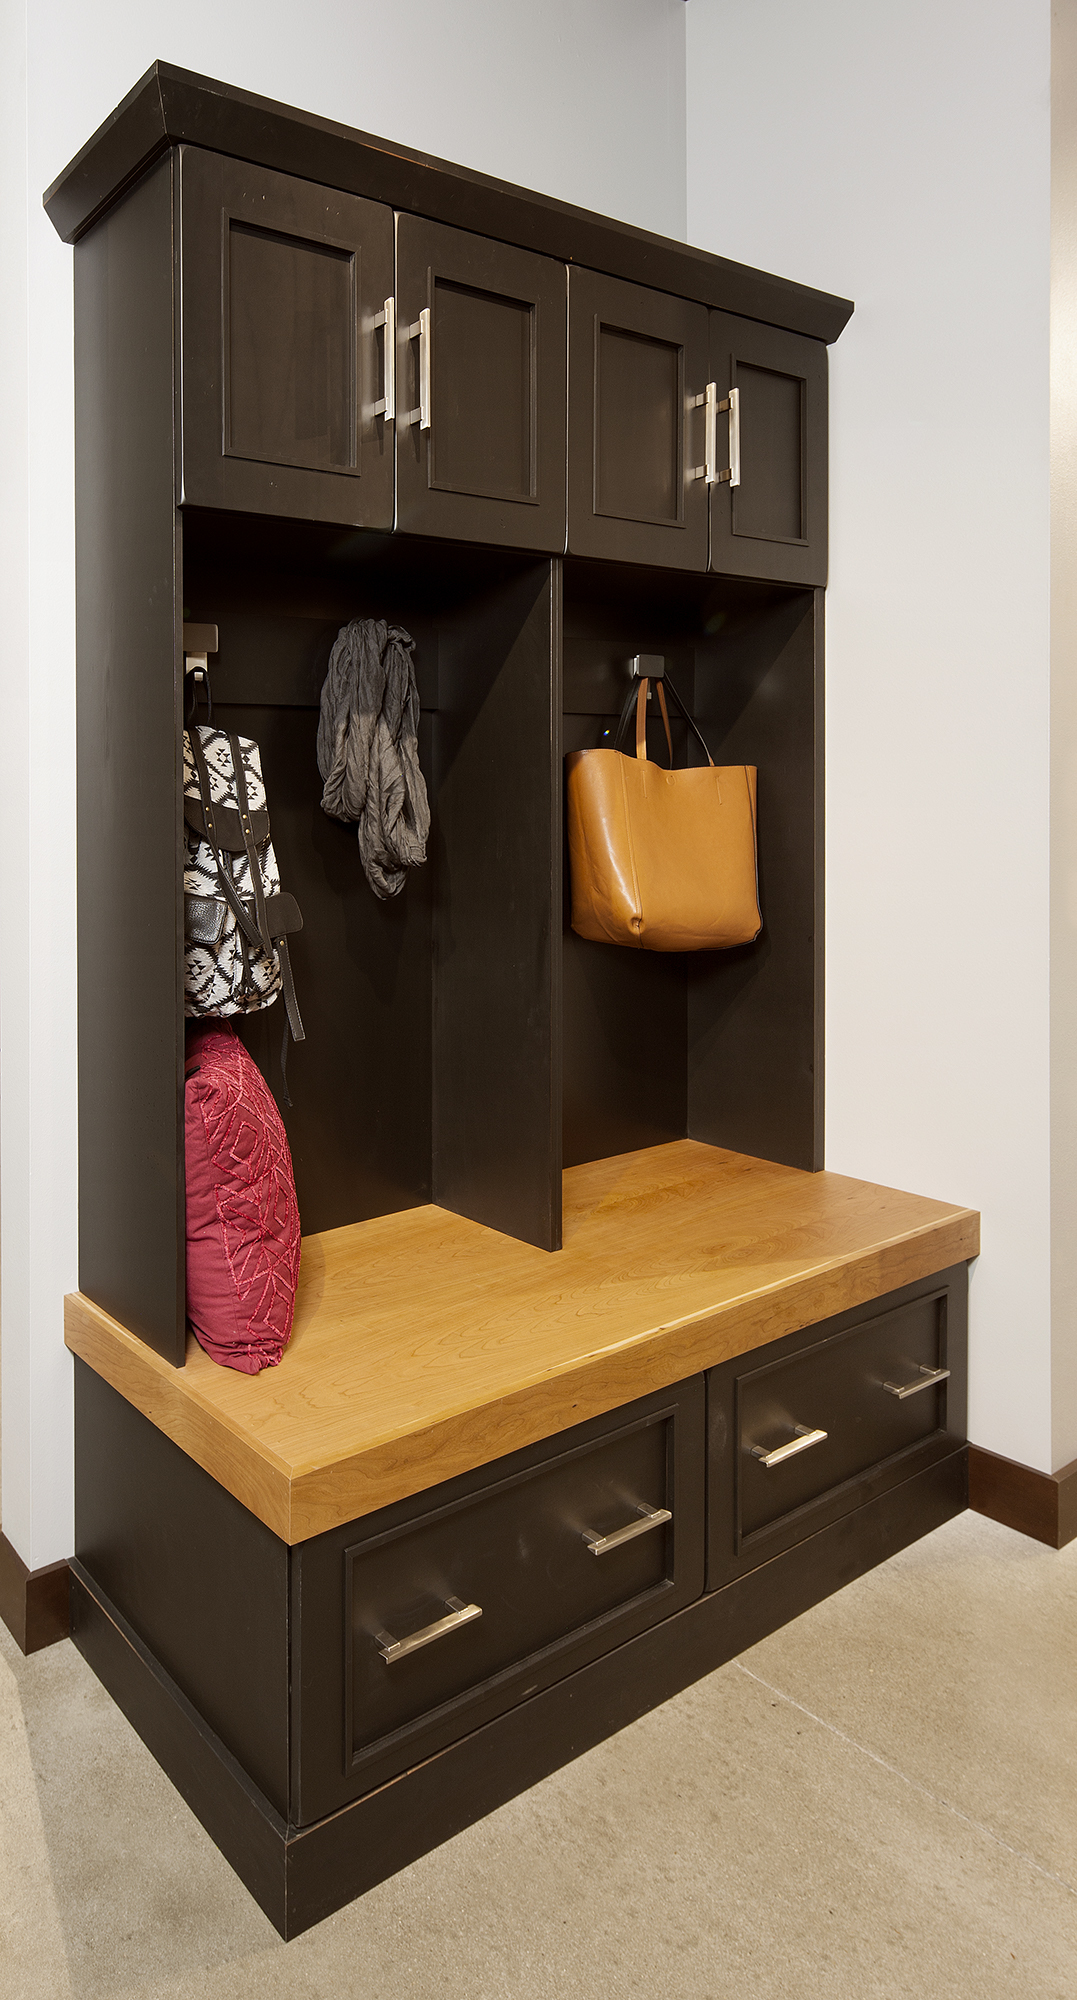 Stained locker cabinets in Charcoal Natural by ShowplaceEVO - view 1